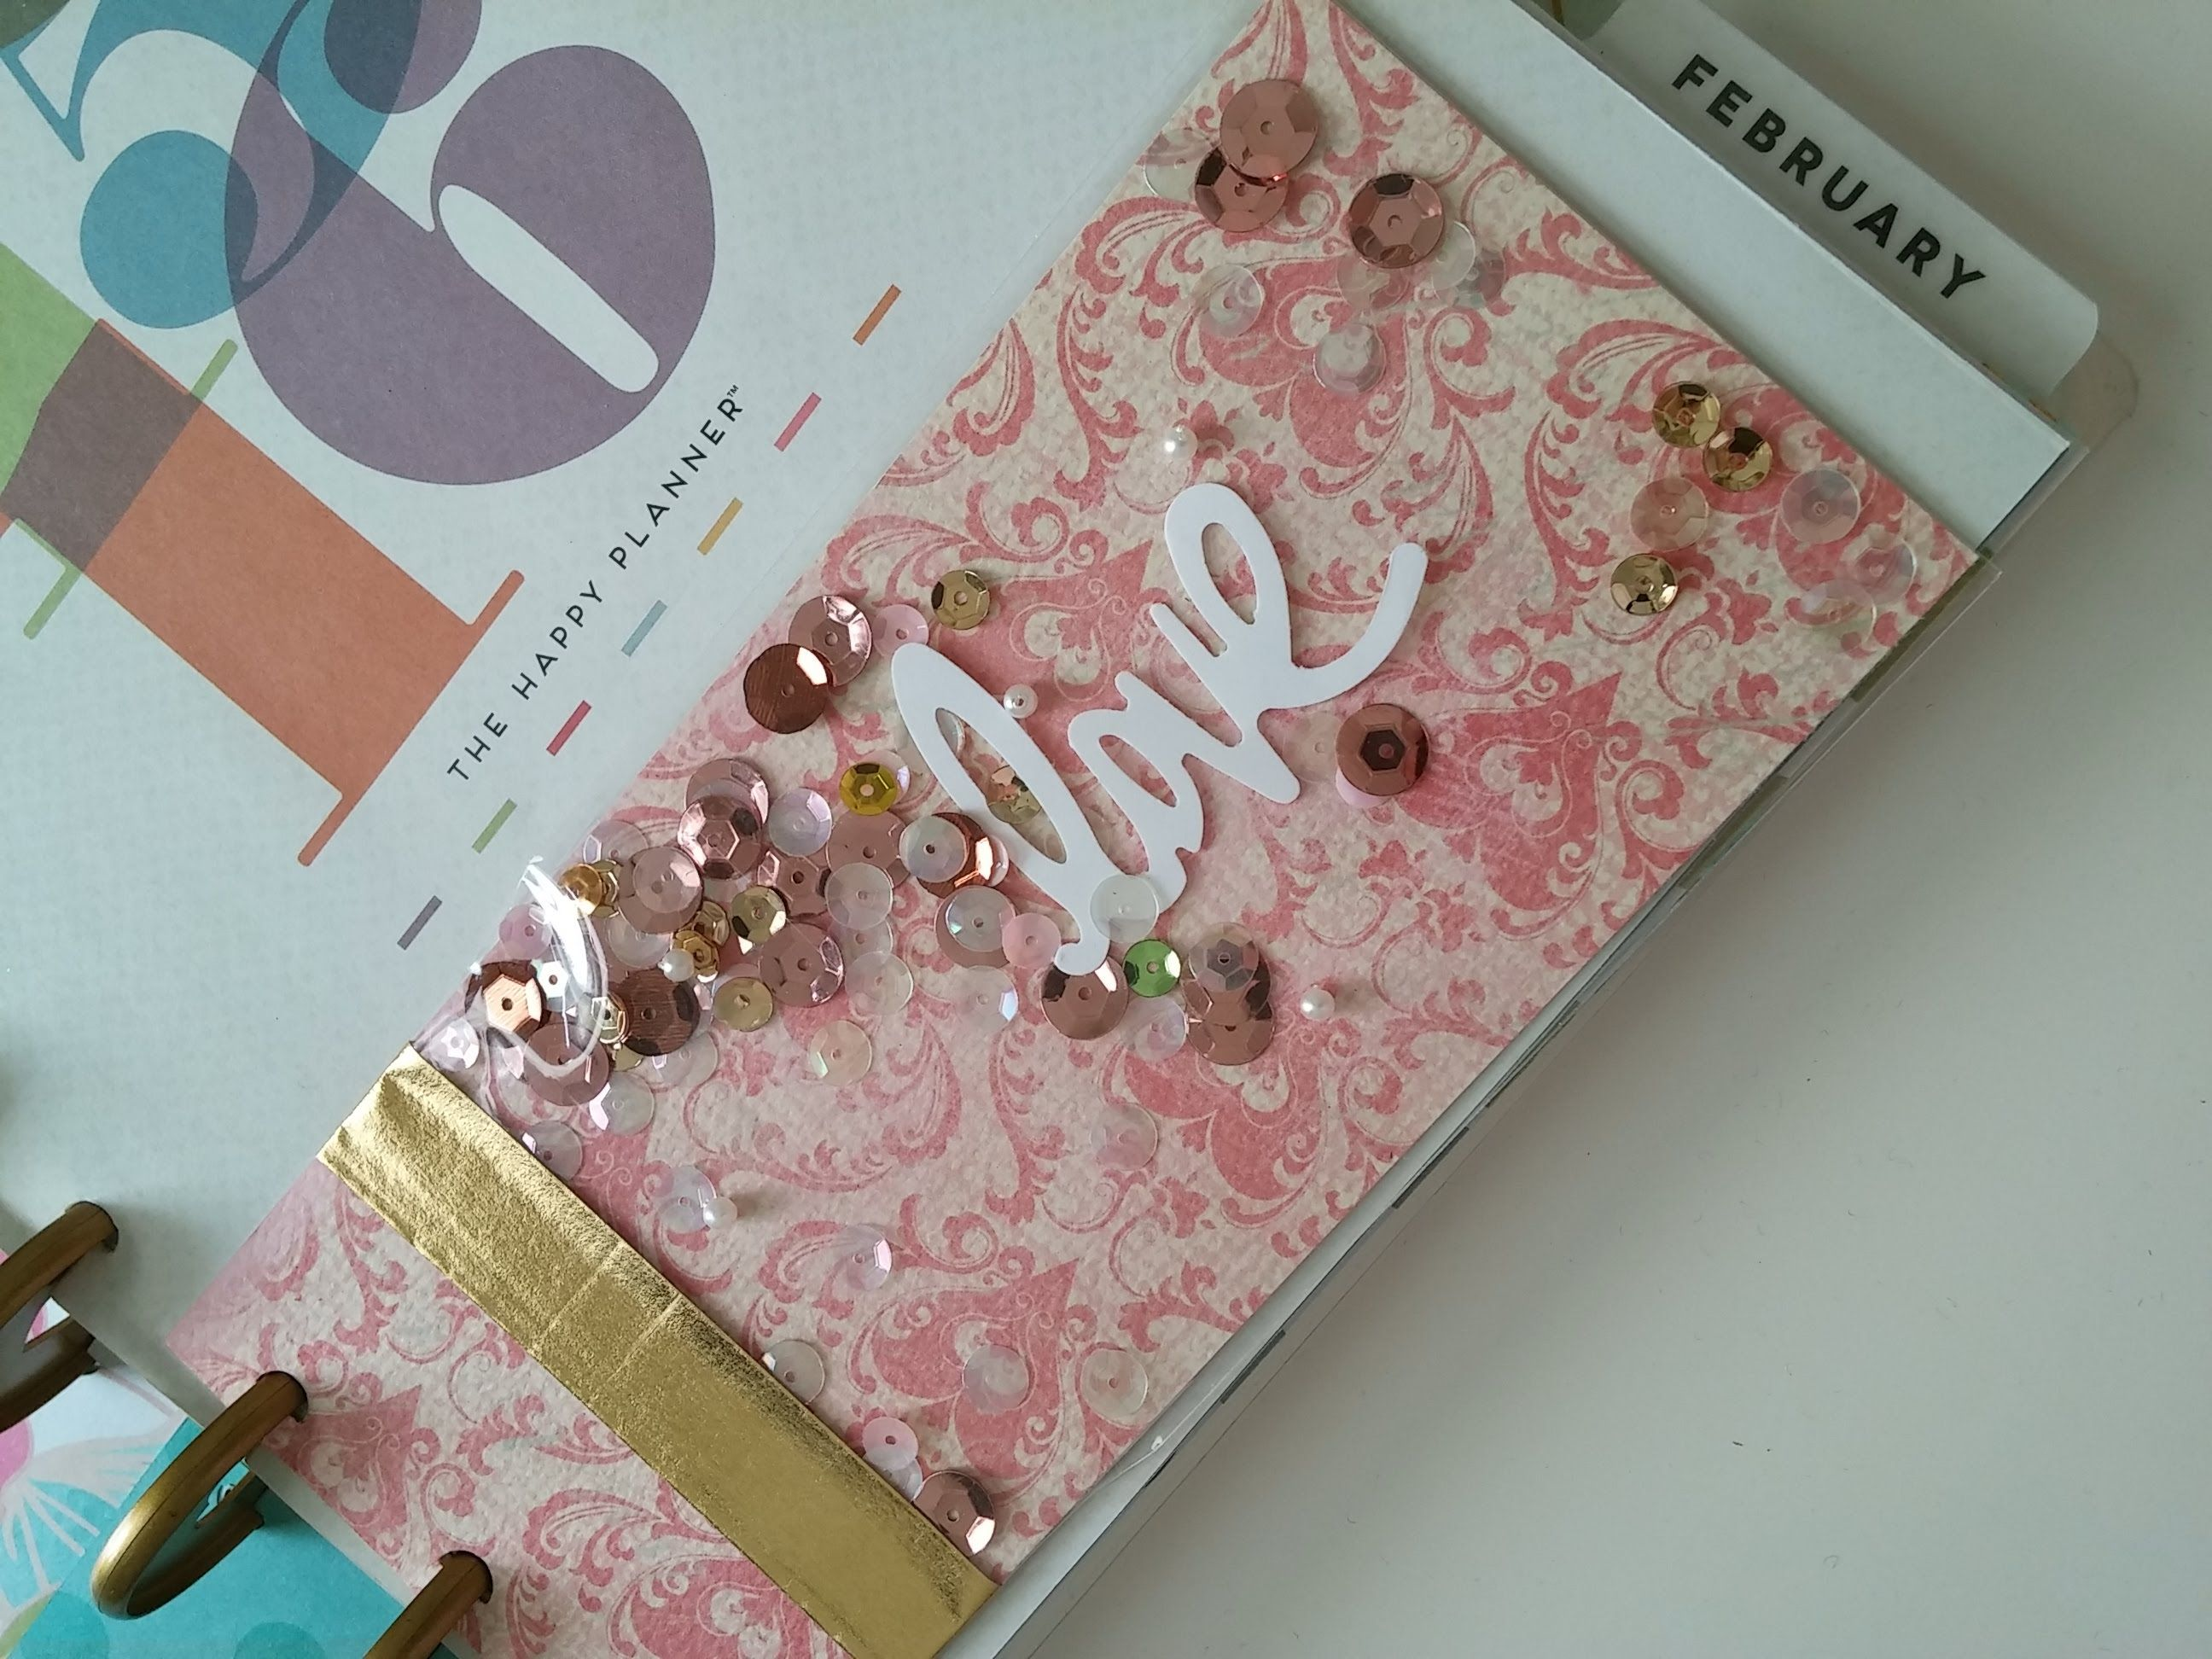 I Made Some Shaker Cards For My Planner And Journal Using Cellophane